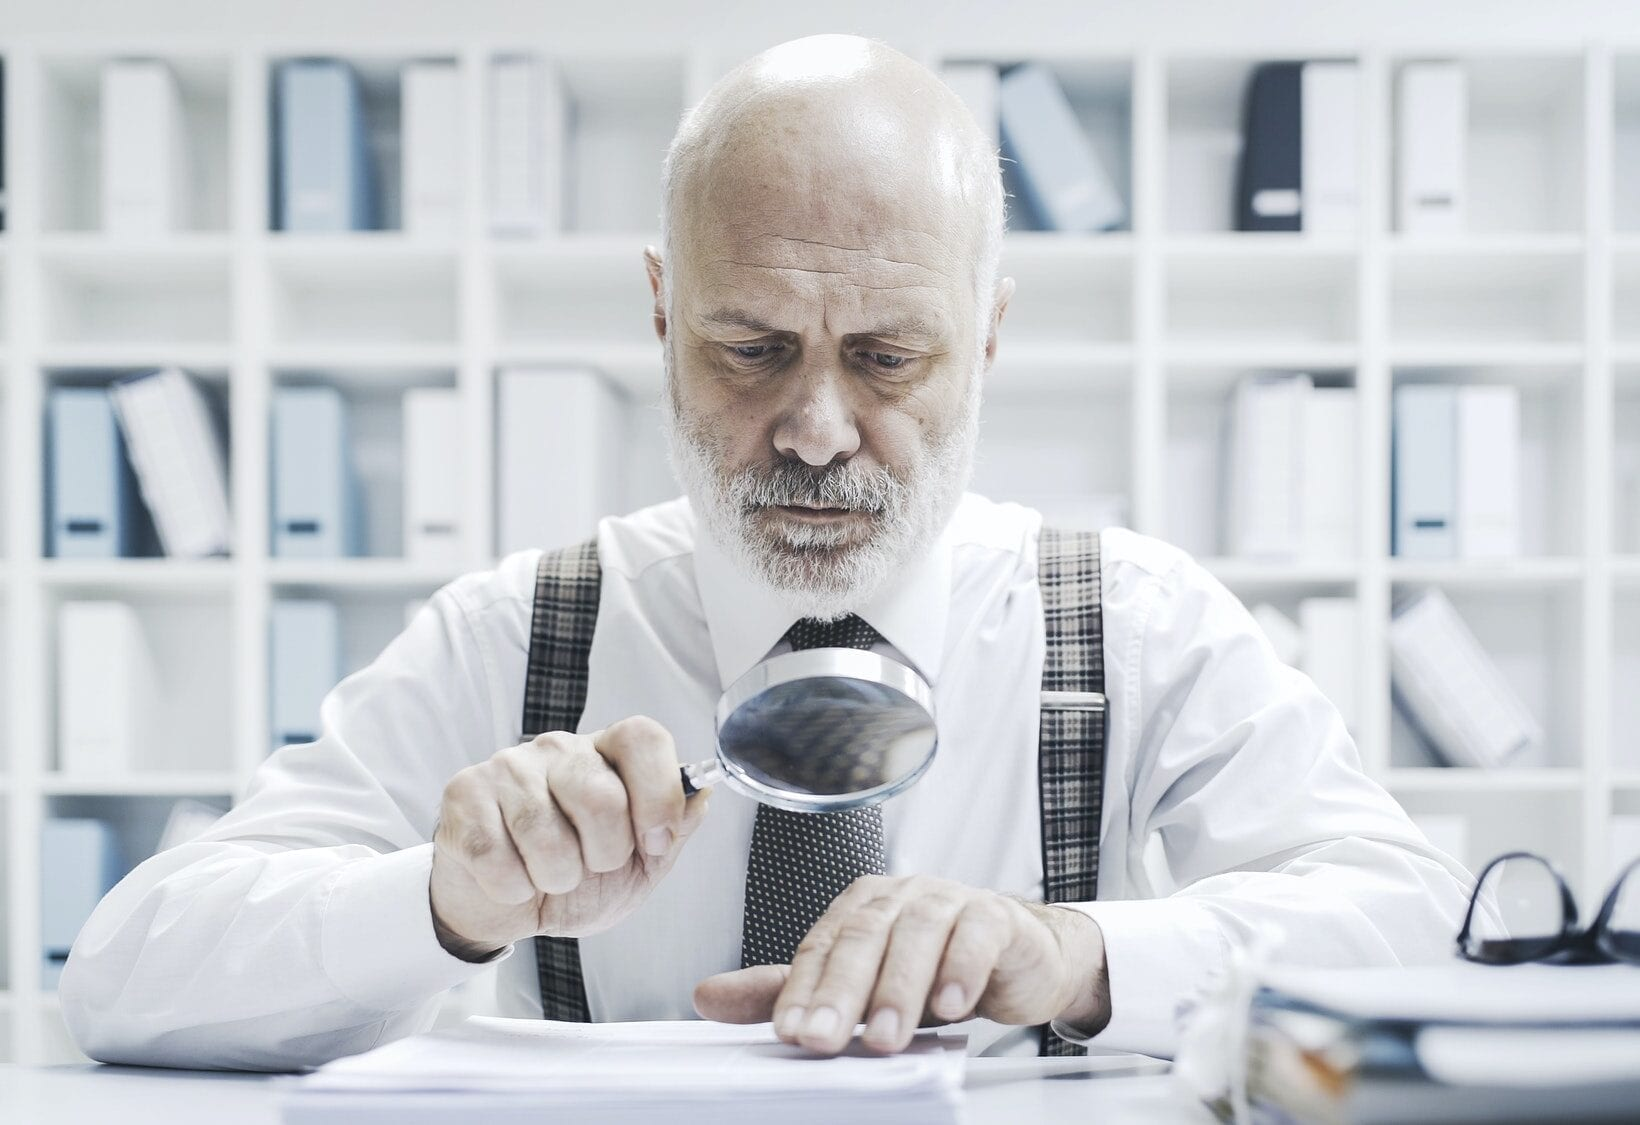 Corporate businessman checking paperwork with a magnifier, Written Communication